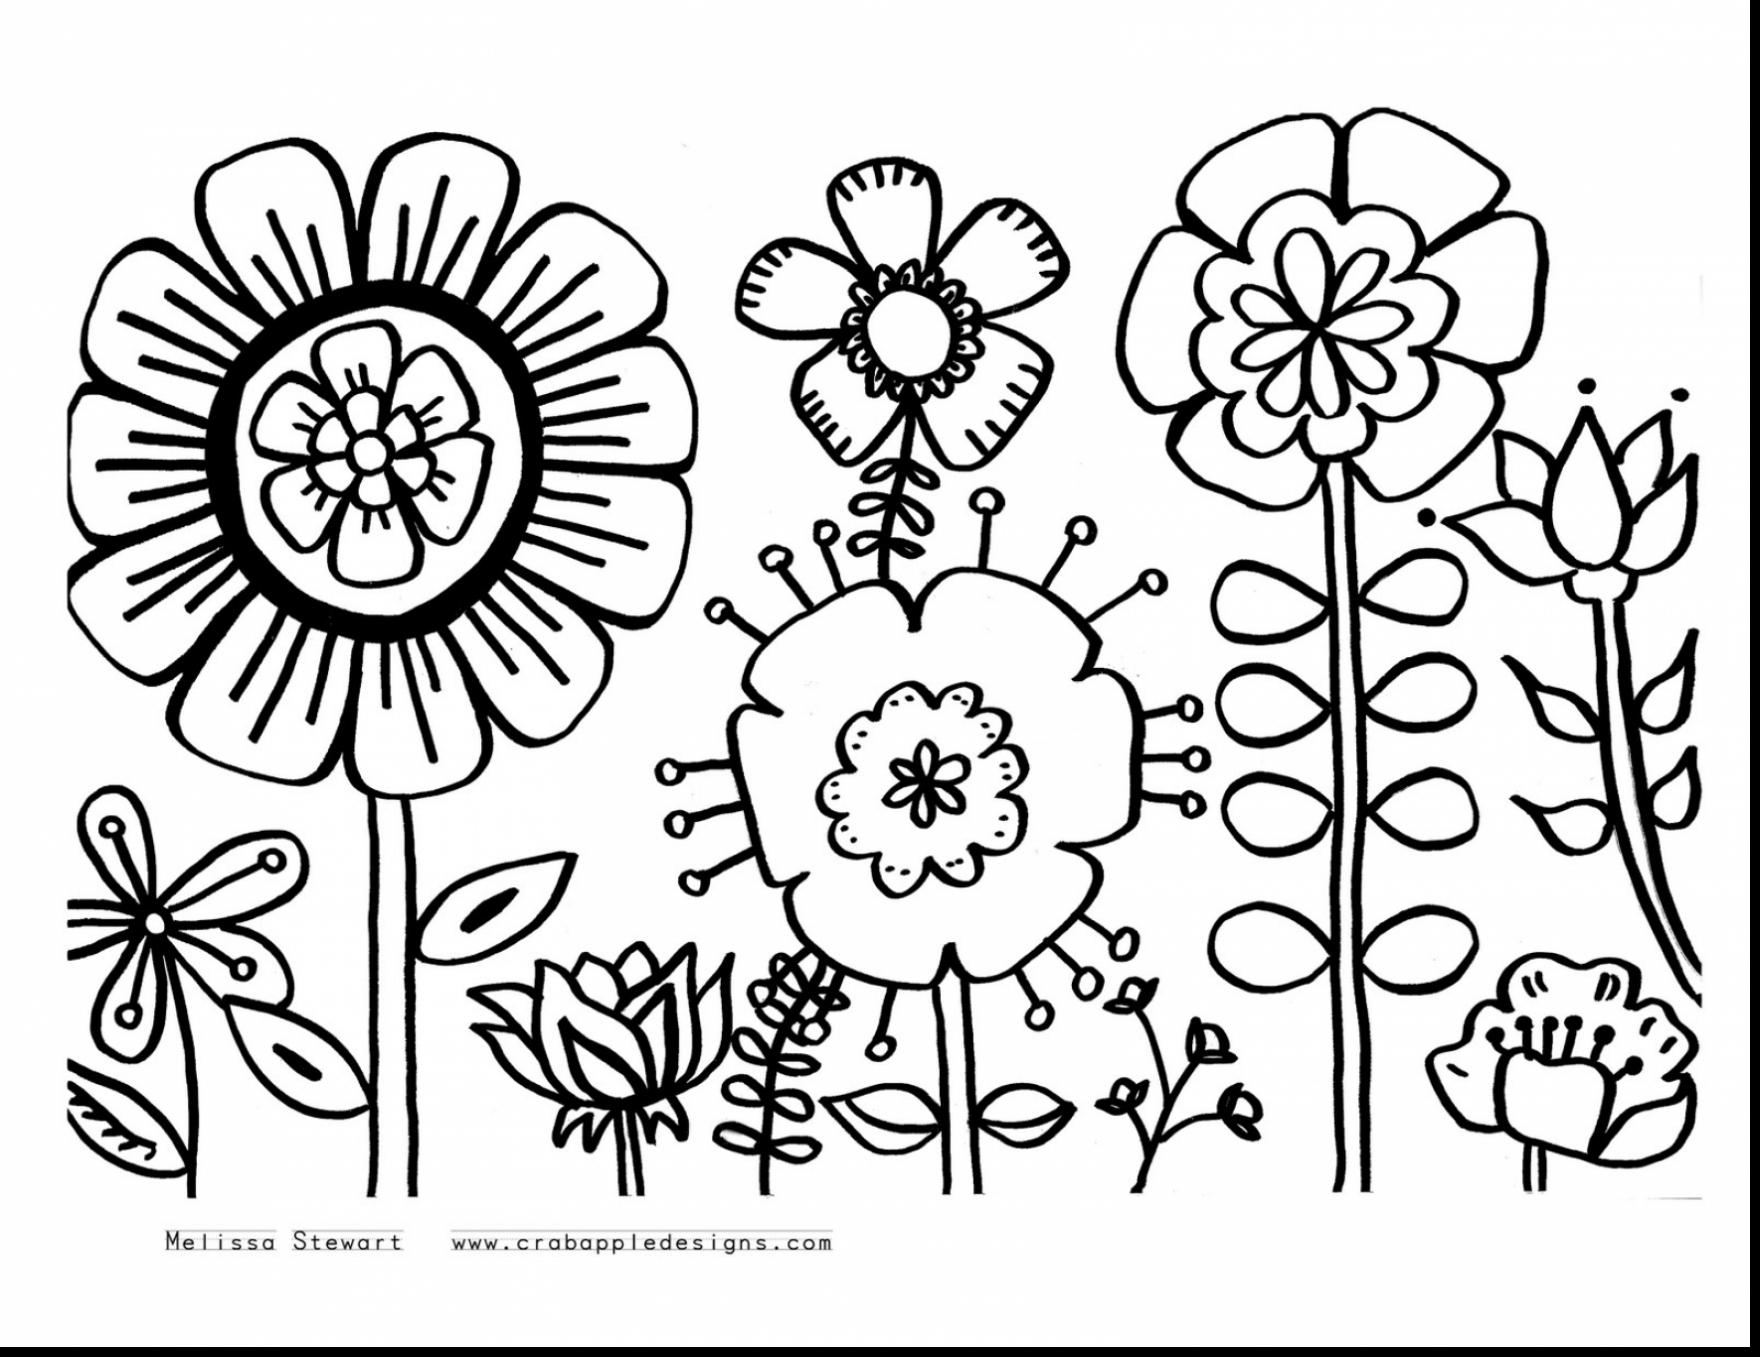 Spring Flowers Coloring Pages To Print Pdf | 1357x1760